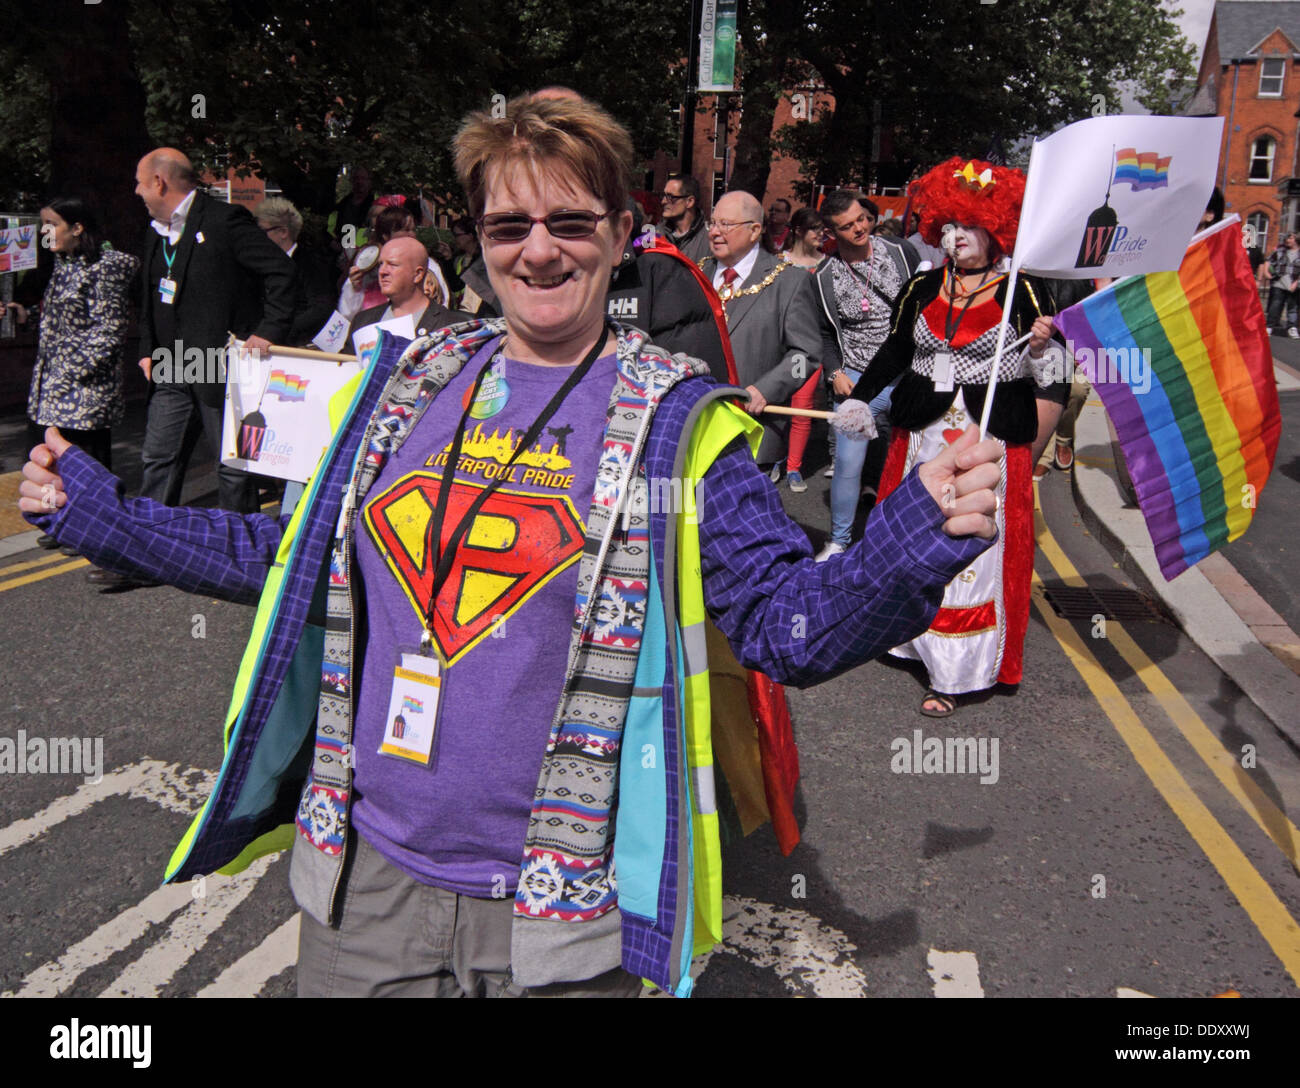 England,flag,UK,GB,Great,britain,British,gay,lesbian,trans,transgender,LGBT,Bi,Bi-sexual,bisexual,people,men,women,marching,rights,WarringtonPride,march,marches,WBC,borough,council,unitary,local,authority,GGHT,golden,gates,housing,trust,events,celebrating,event,annual,yearly,flag,7th,seventh,rainbow,gotonysmith,Warington,gayrights,Sep,Sept,Stonewall,town,demonstrate,demonstrators,demonstrator,Liberation,Front,GLF,gayness,gayboy,boy,boys,girls,girl,population,world,worldpride,Canal,St,street,rugby,player,players,team,cup,rugbyworldcup,07/09/2013,09/07/2013,Rylands,Palmyra,Sq,square,Bond,Bridge,WarringtonLGBT,LGBTWarrington,members,volunteers,stigma,services,service,HIV,aids,sexuality,sex,lgbtwarrington.co.uk,WA1,1JL,WA11JL,Buy Pictures of,Buy Images Of